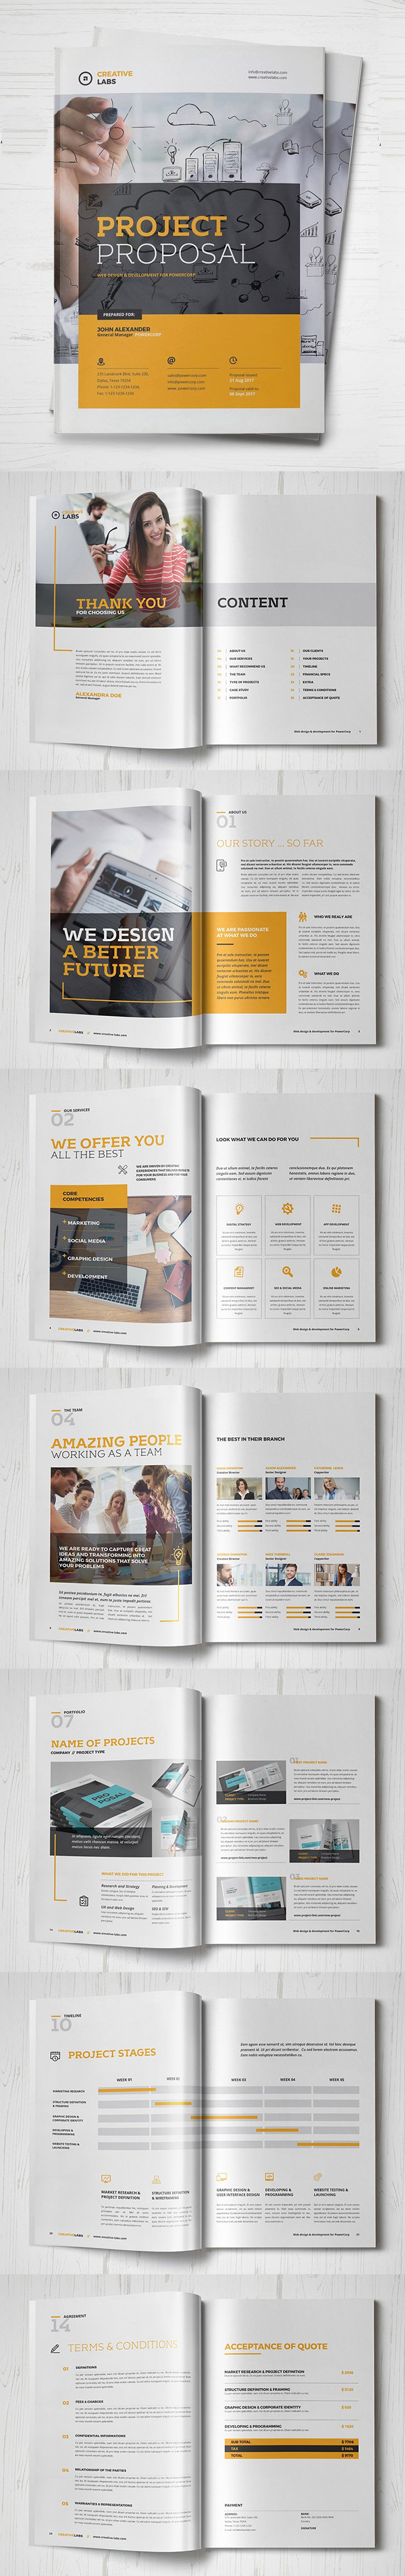 Professional Business Proposal Templates Design - 20